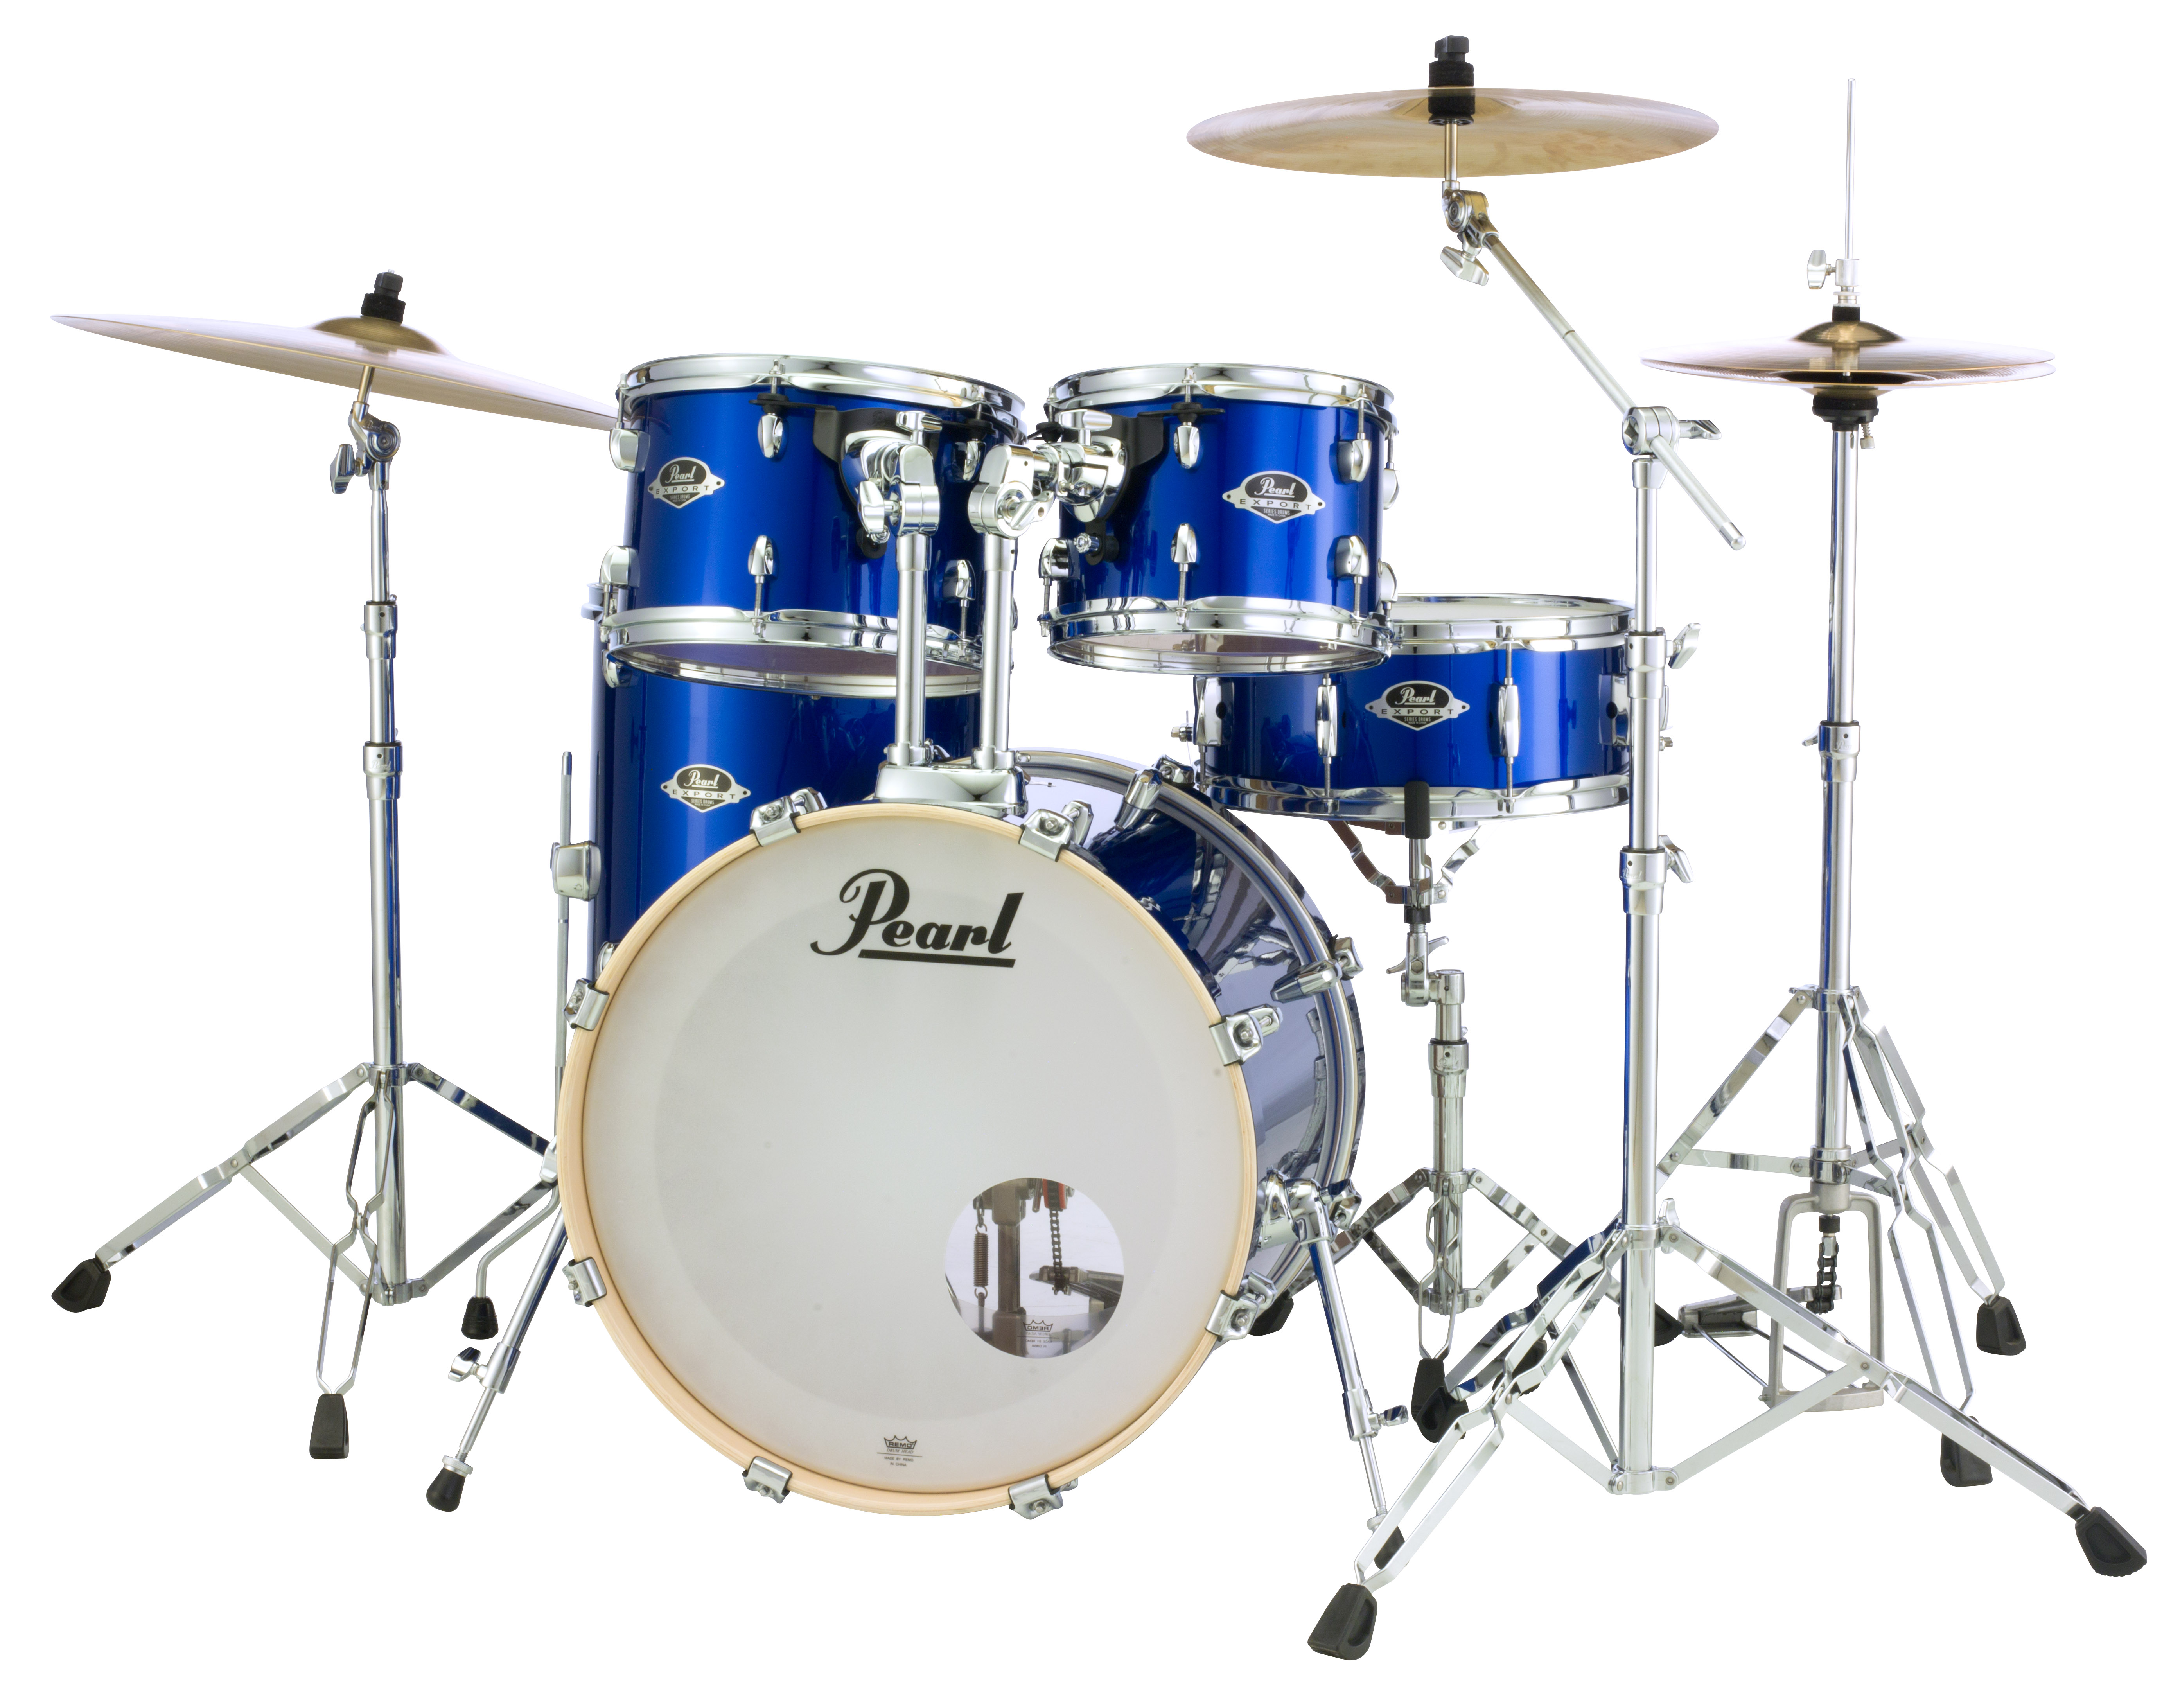 Pearl Export 5 pc Drum Set with HWP830 and SBR Cymbal Pack   High Voltage Blue 2016BB/1007T/1208T/1414F/1455S/HWP830